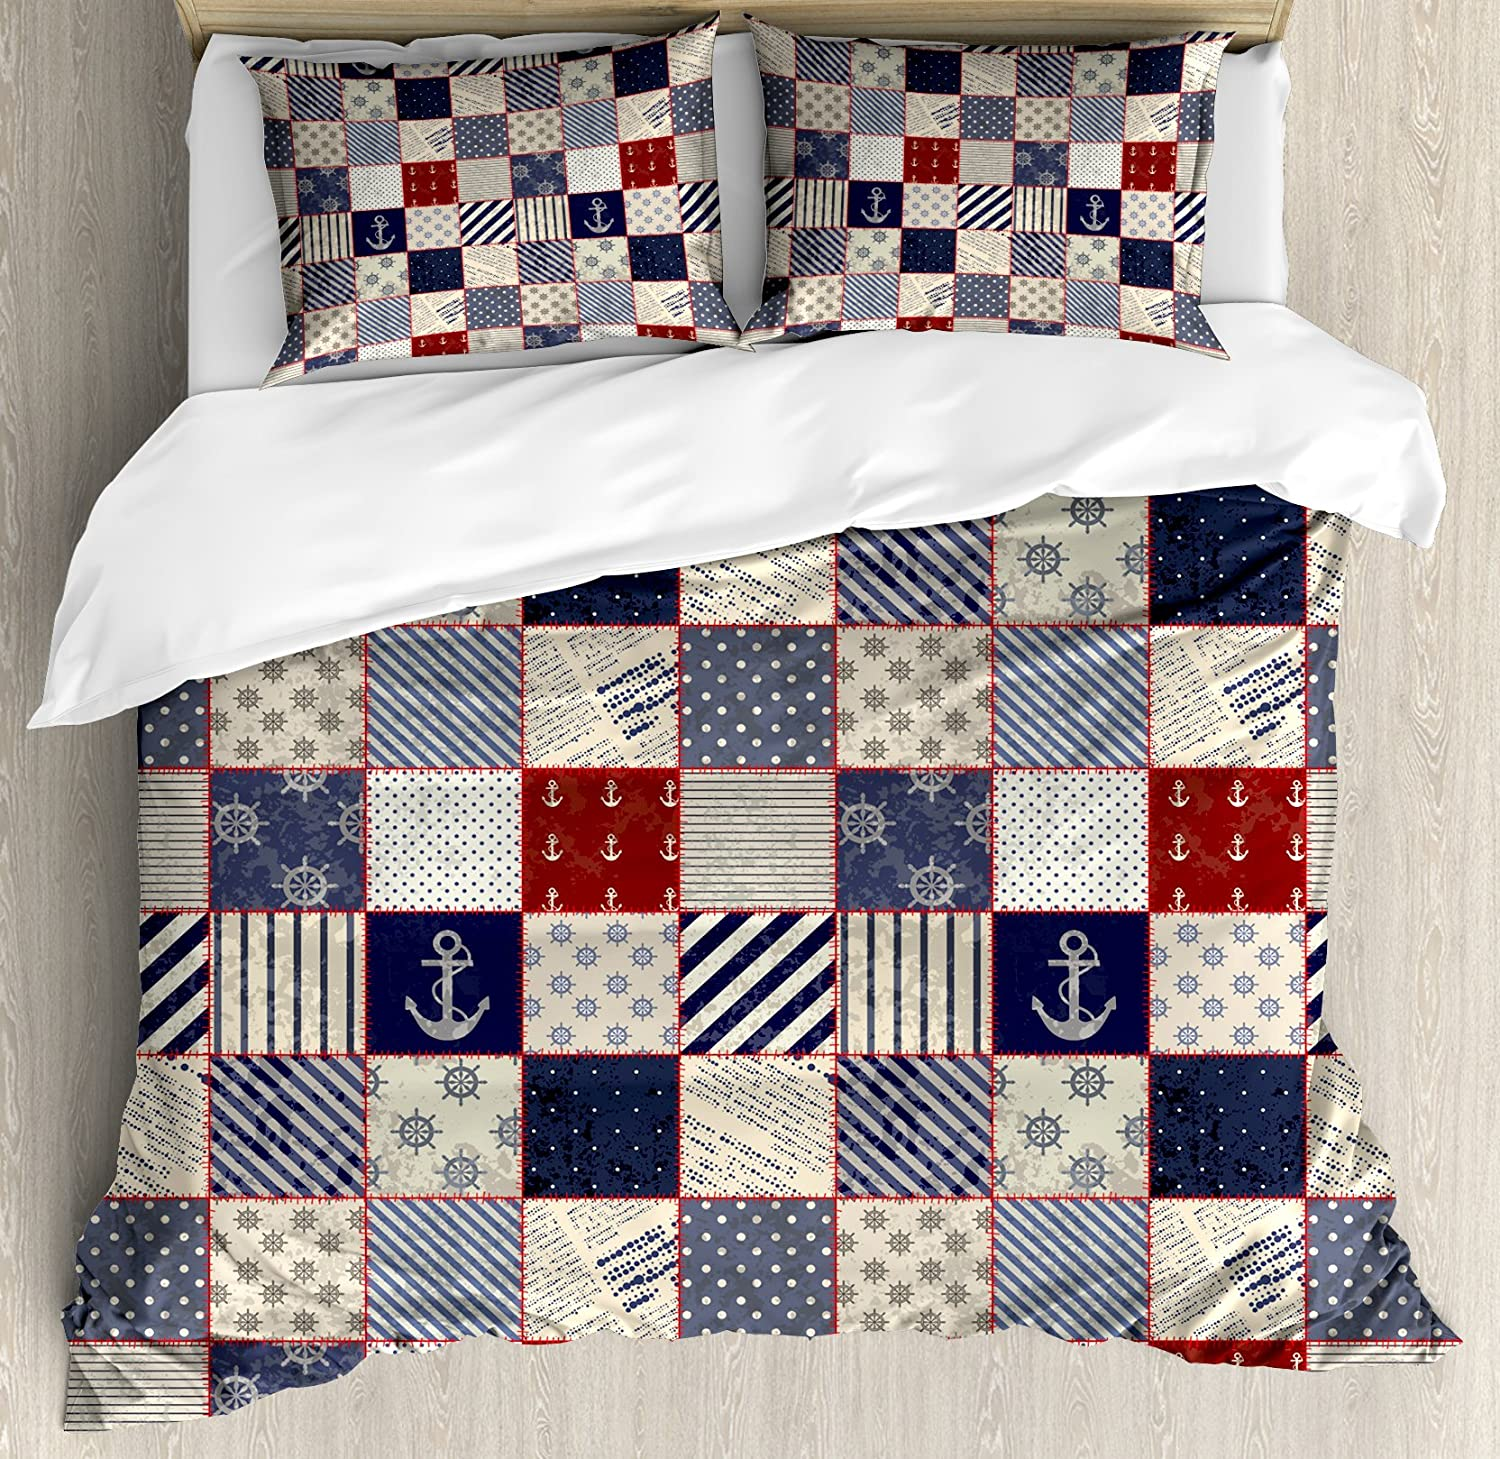 Lunarable Patchwork Duvet Cover Set Queen Size, Checkered Pattern with Old Nautical Design Elements and Grunge Effect, Decorative 3 Piece Bedding Set with 2 Pillow Shams, Navy bluee Ruby Beige